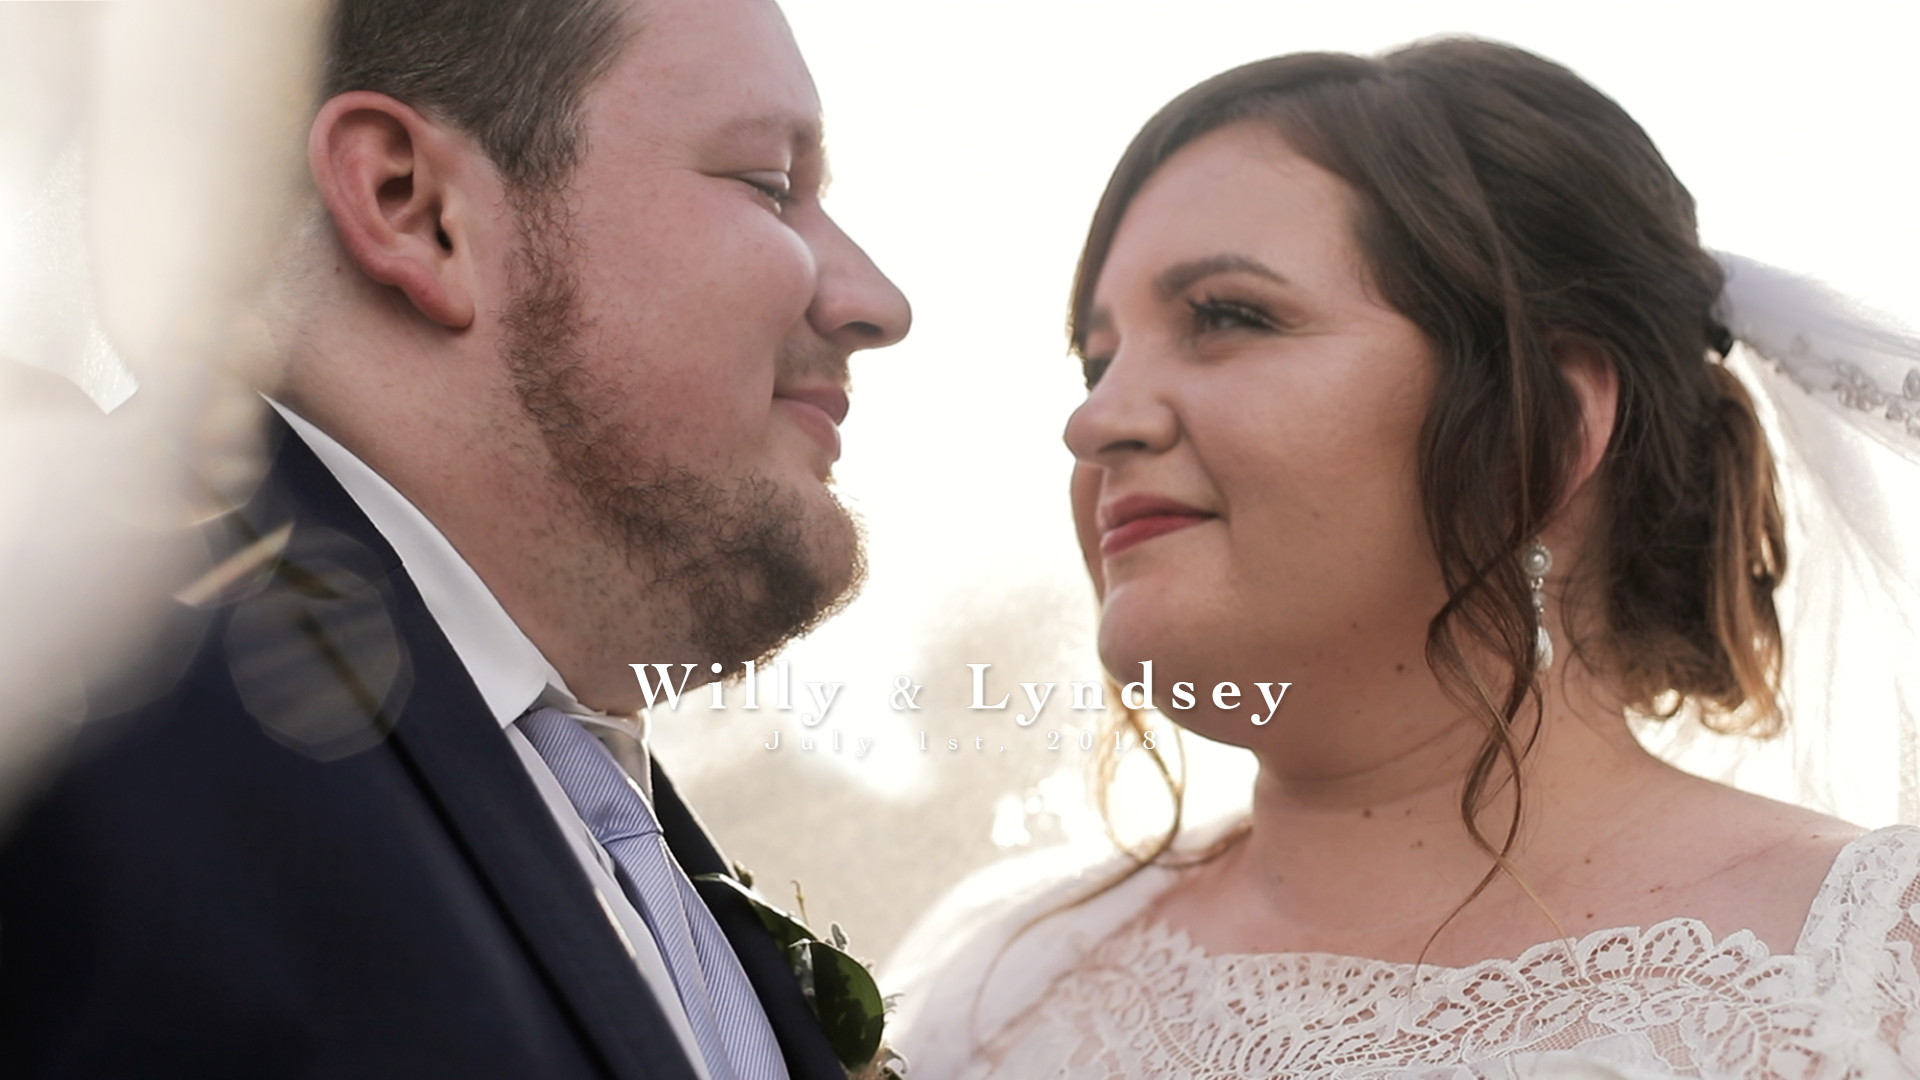 Willy + Lyndsey | Nashville, Tennessee | Loveless Barn